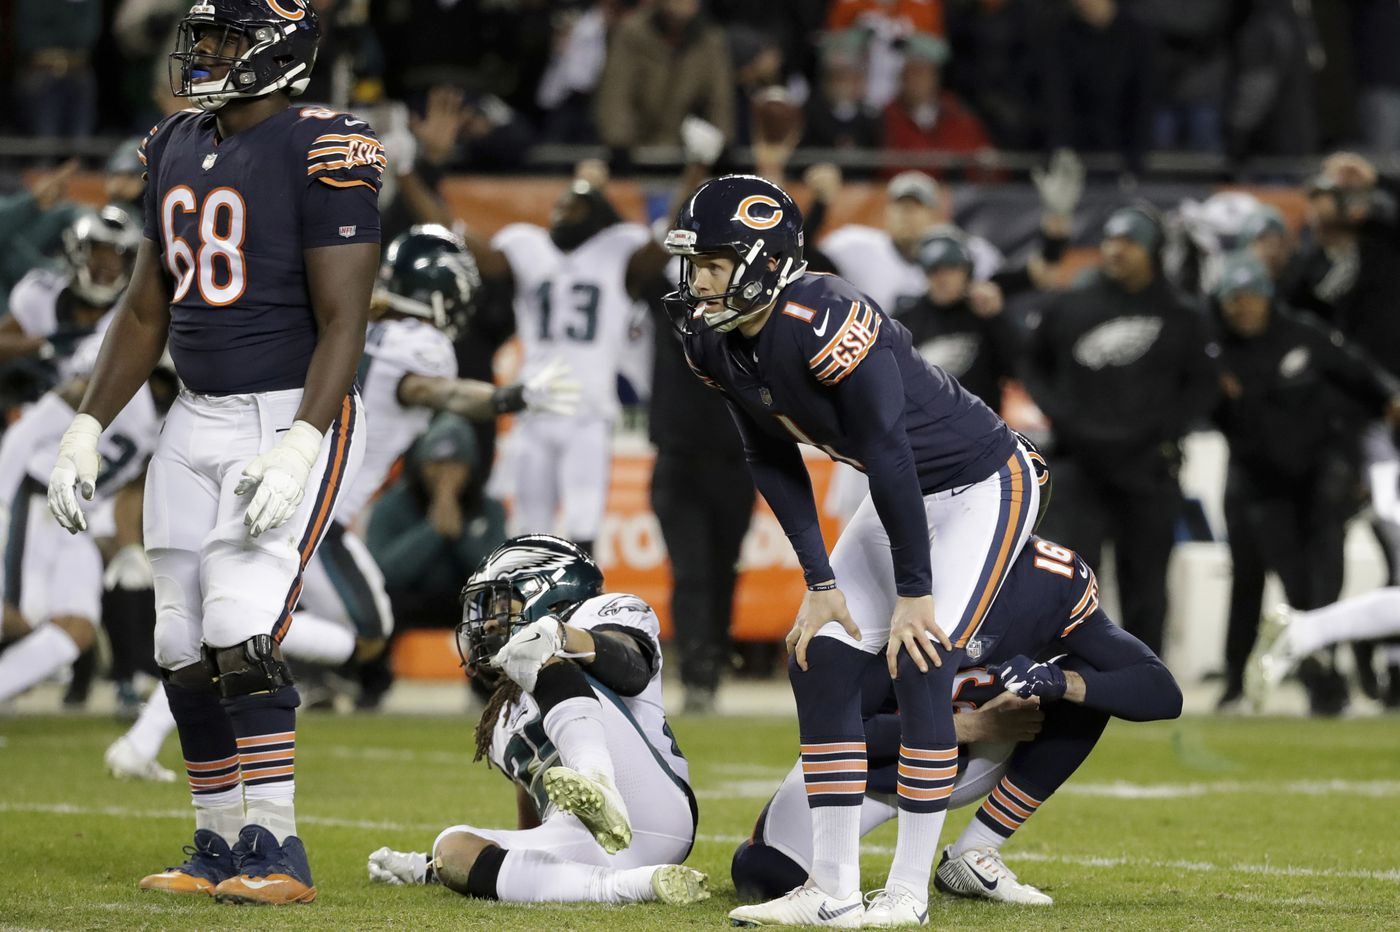 Bears will release kicker Cody Parkey at start of new league year